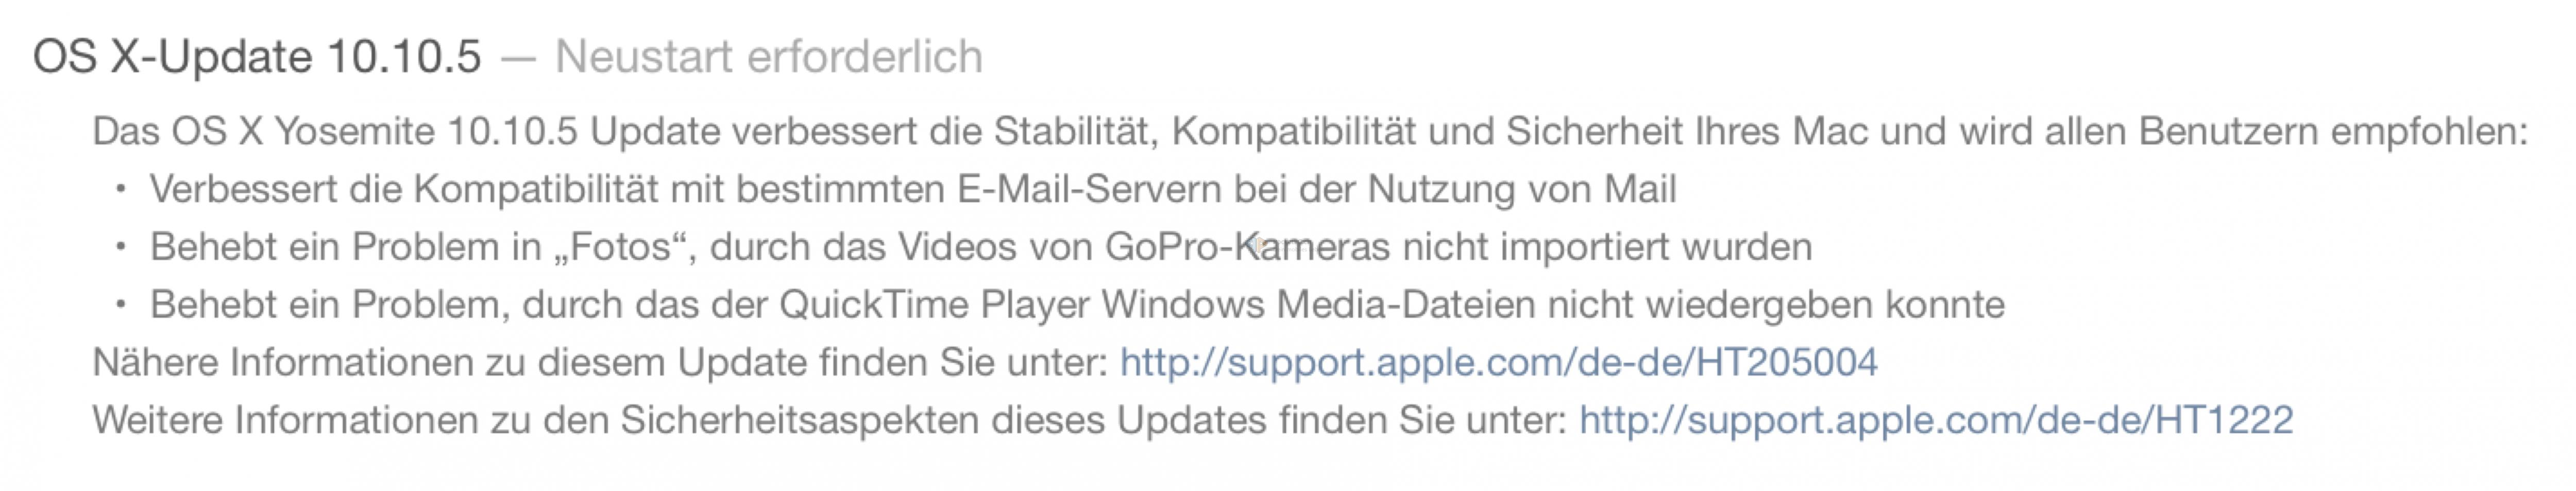 macOS Update Topic-bild-1.jpg